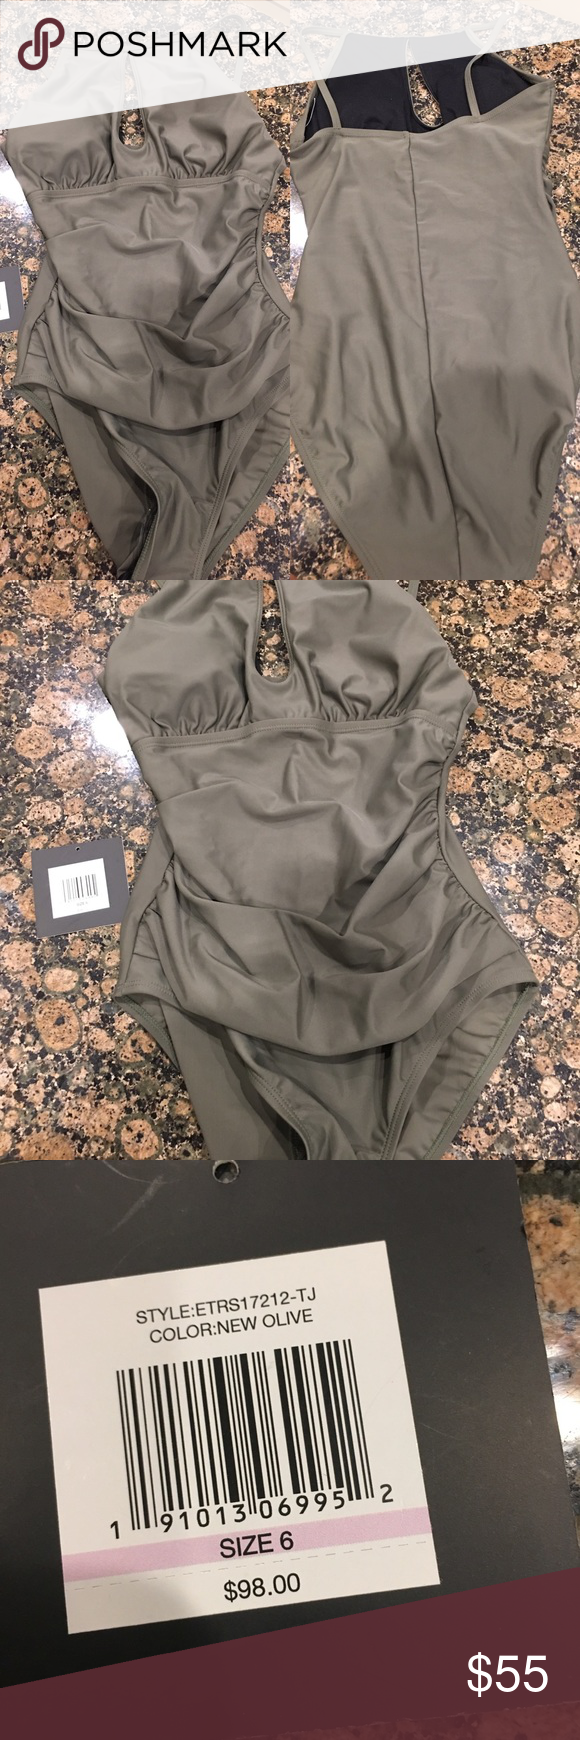 10a25e3e59c00 NWT Ellen Tracy Olive One Piece Ruched swimsuit Brand new Ruched One Piece  swim suit. Sexy key hole neck line. Comes from a smoke free environment!